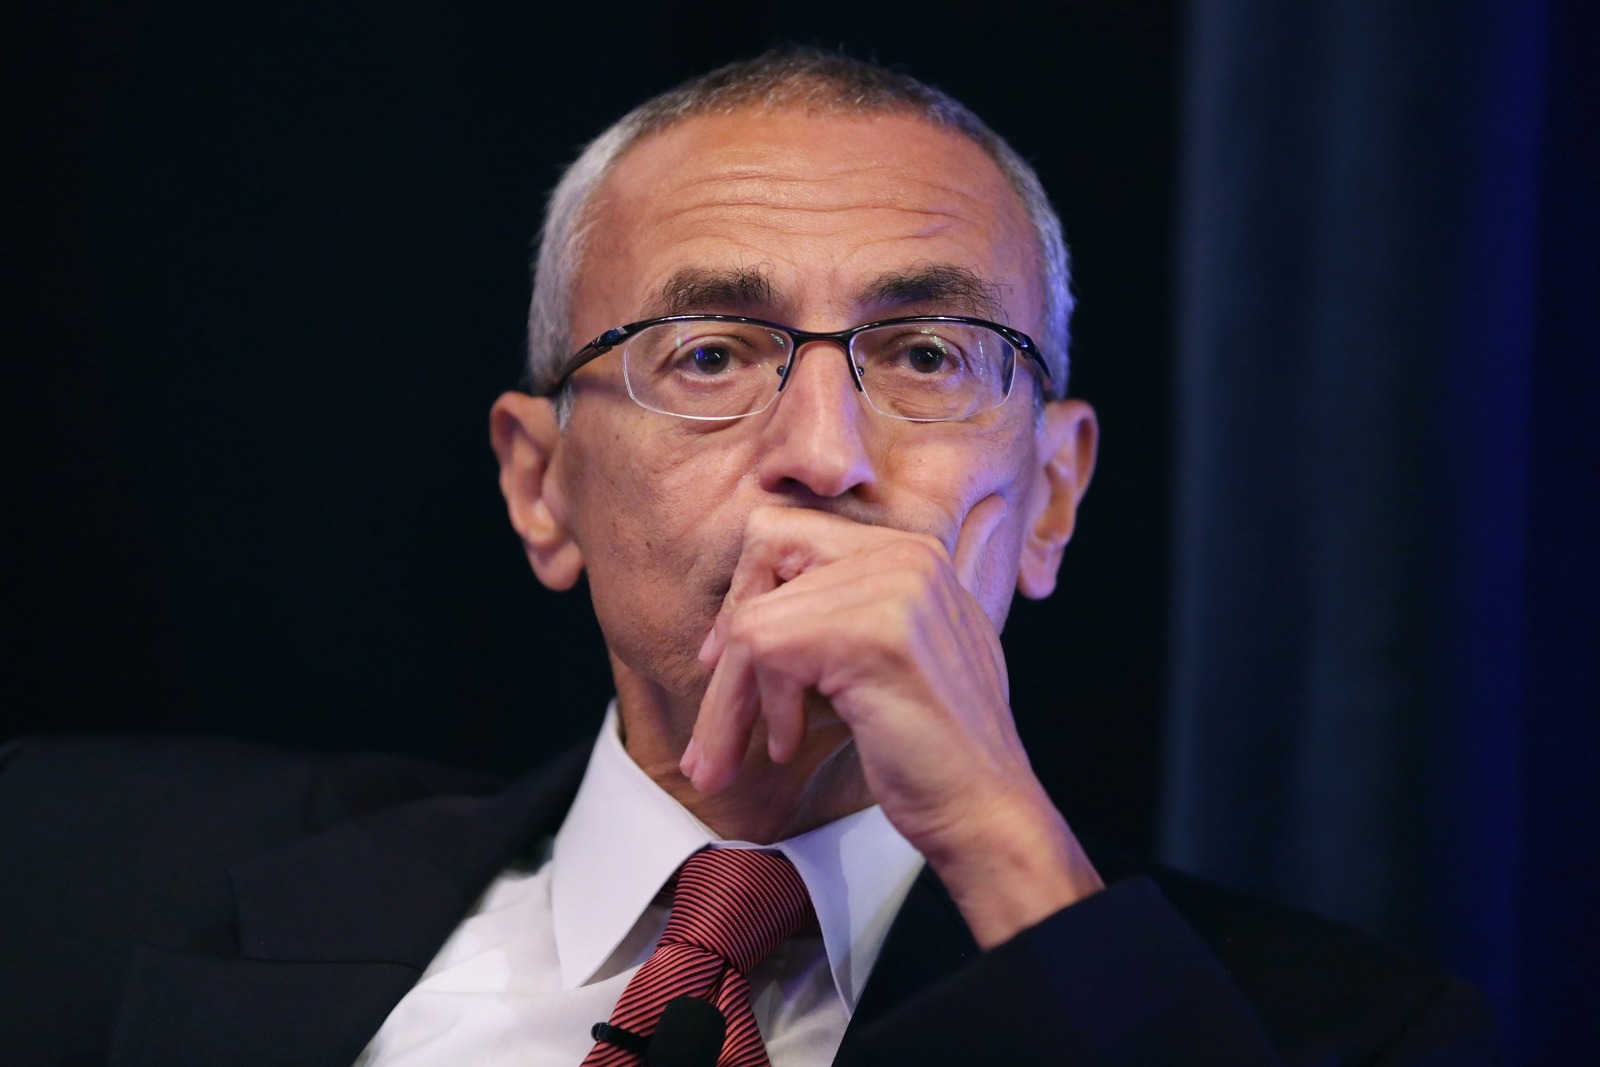 Hackers claim to have hacked and wiped Clinton campaign chief John Podesta's iPhone